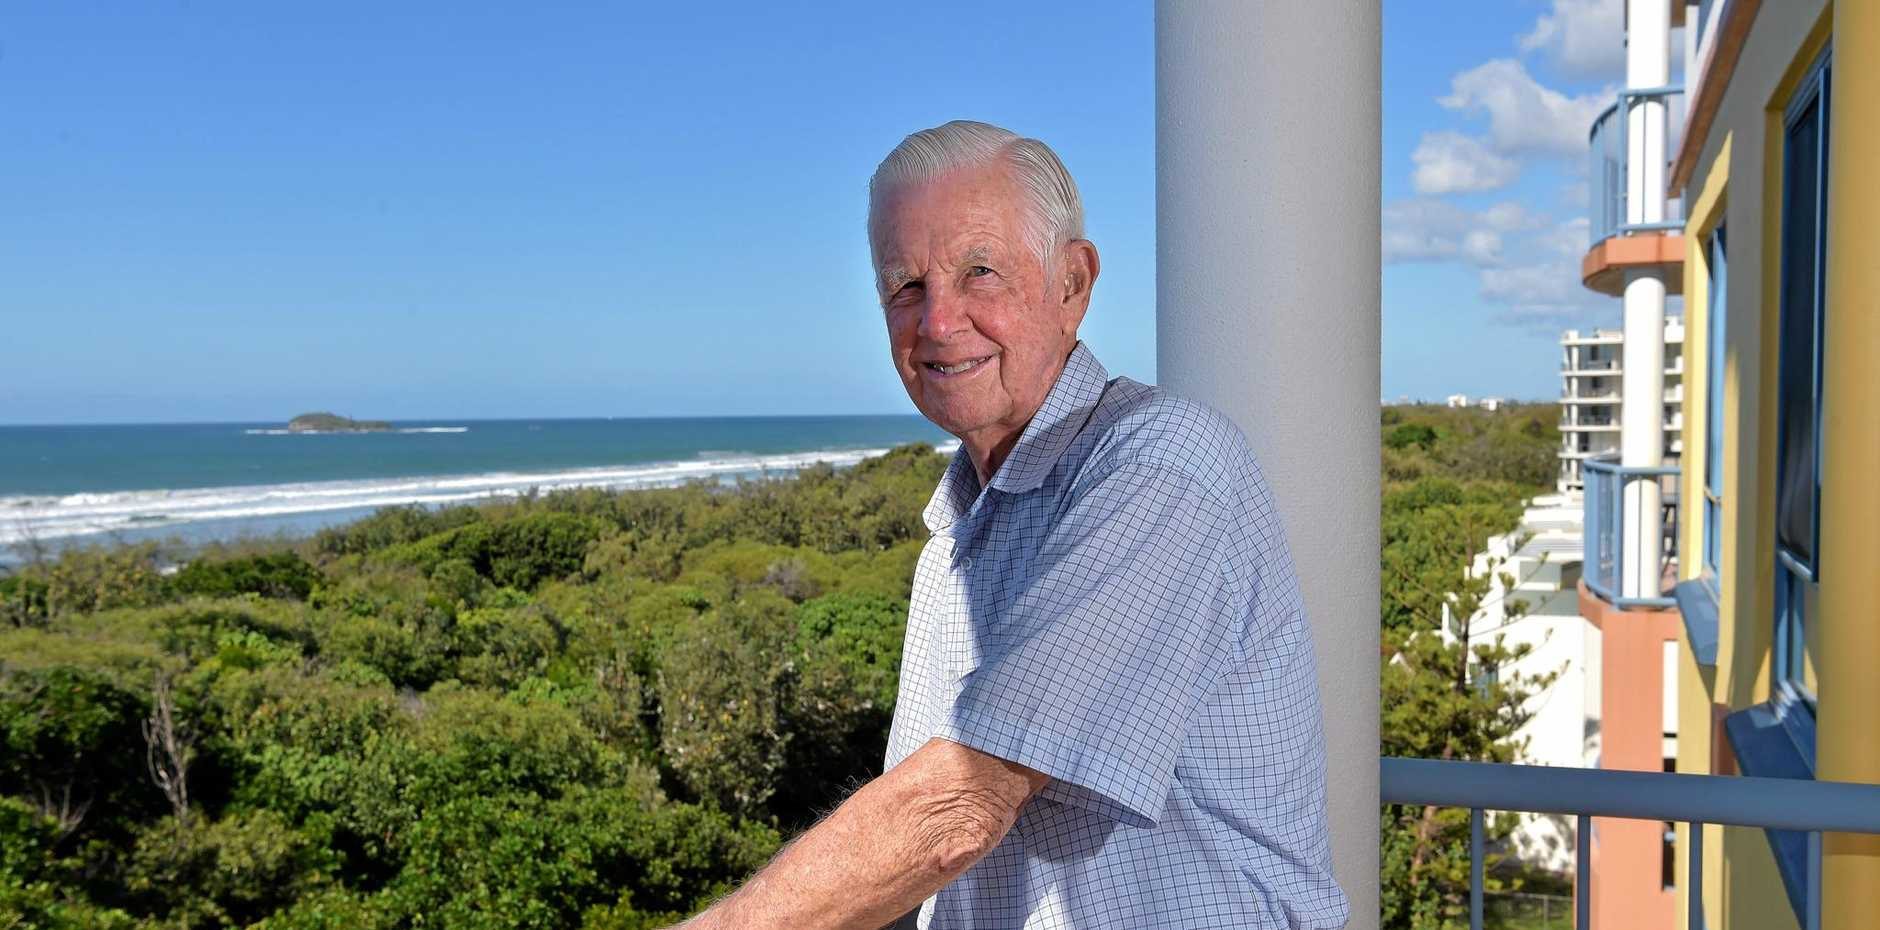 Ken Chadwick is believed to be one of the first white people to spend a night on Old Woman Island when he and a bunch of friends rowed out there and got stranded